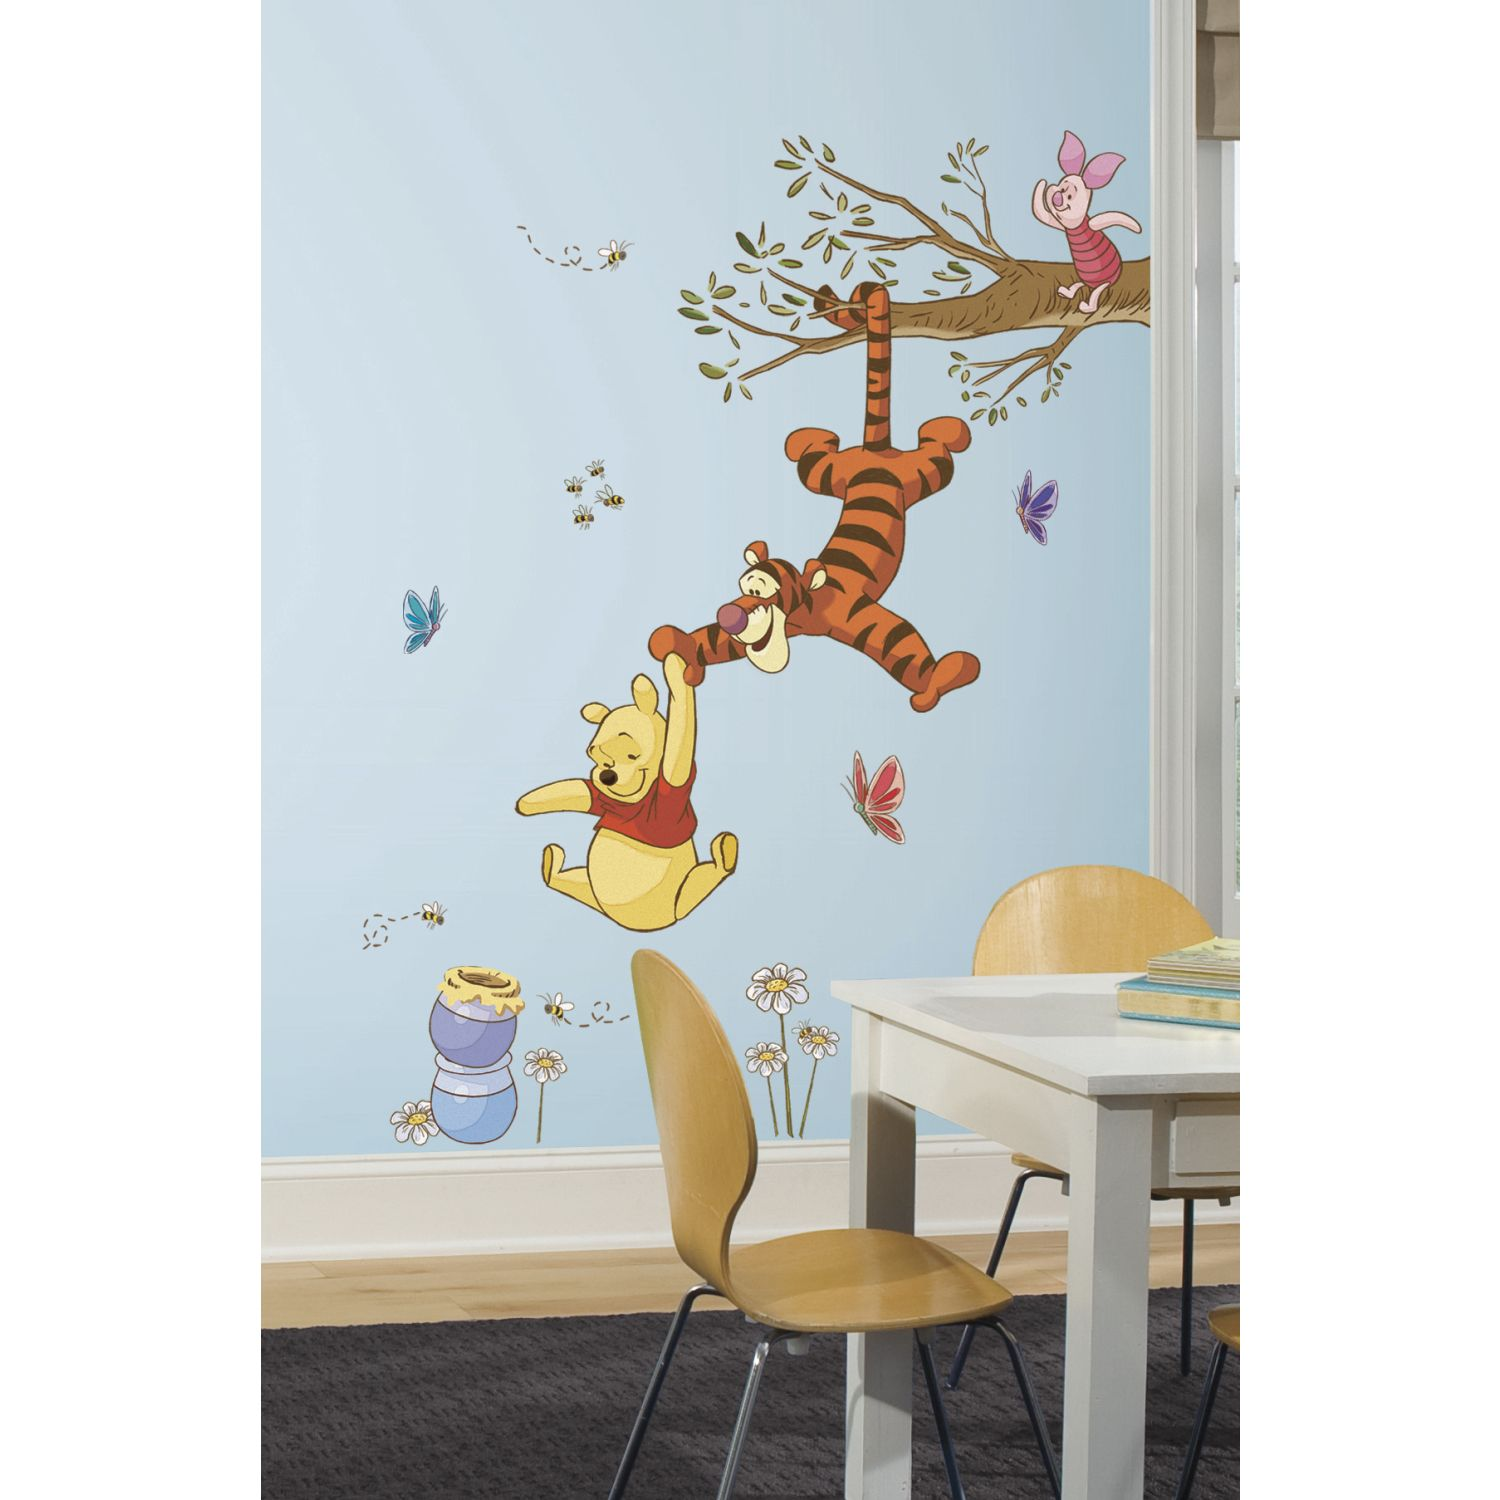 Bring the magic home with these winnie the pooh wall decals bring the magic home with these winnie the pooh wall decals decorate your childs nursery amipublicfo Images